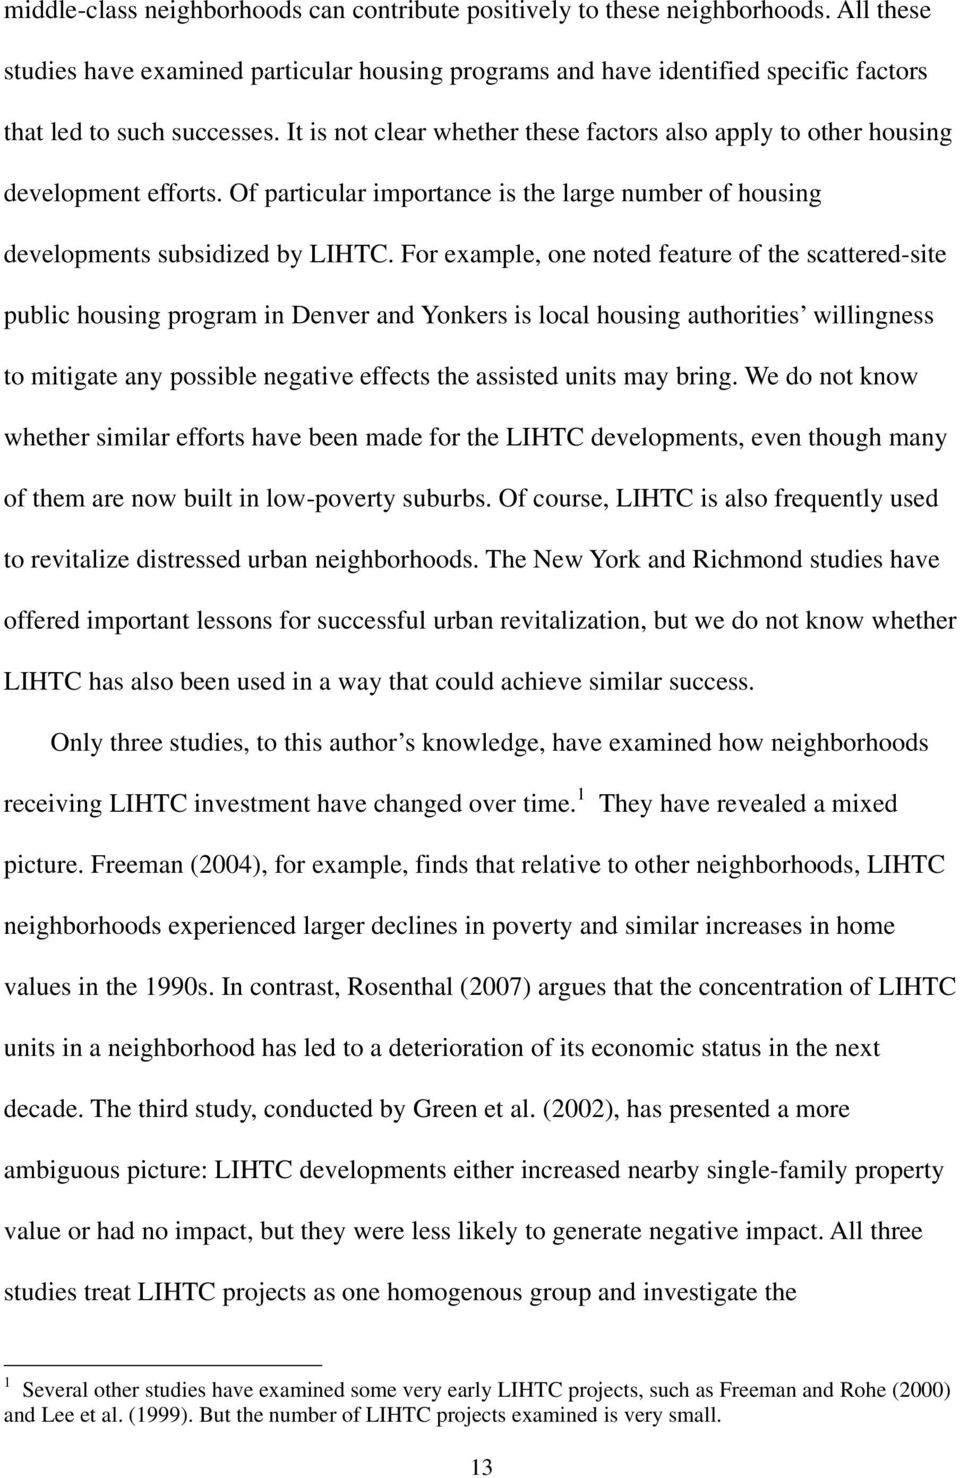 It is not clear whether these factors also apply to other housing development efforts. Of particular importance is the large number of housing developments subsidized by LIHTC.